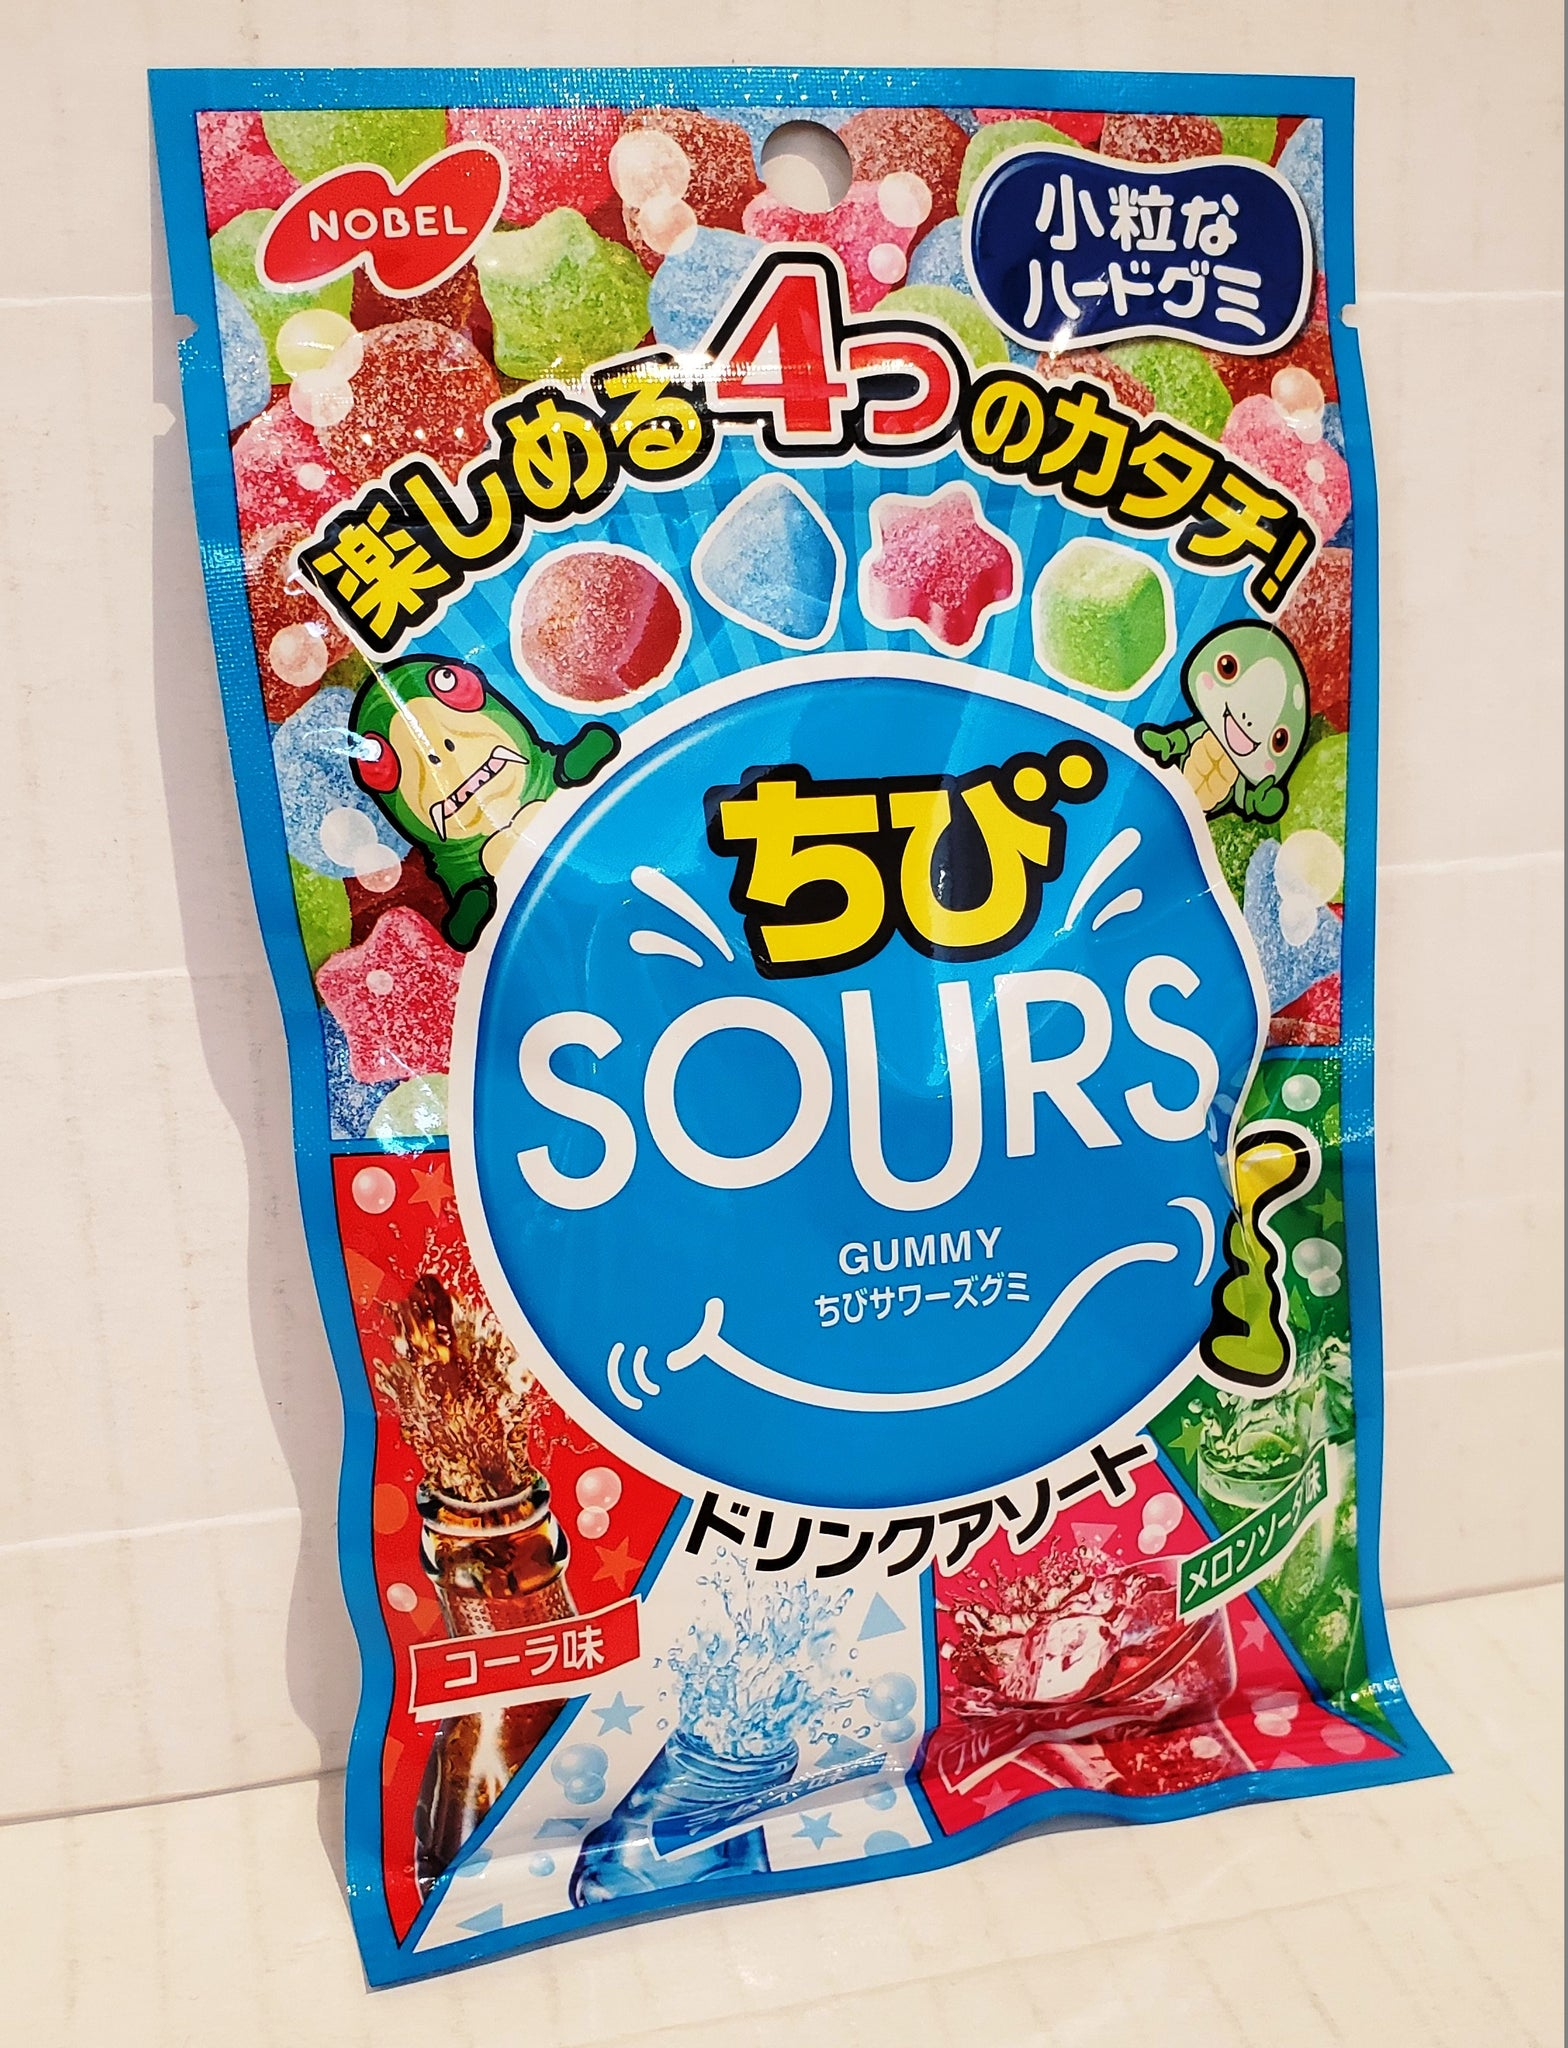 Nobel sours mix fruits soda gummy 樂寶酸砂什果汽水軟糖